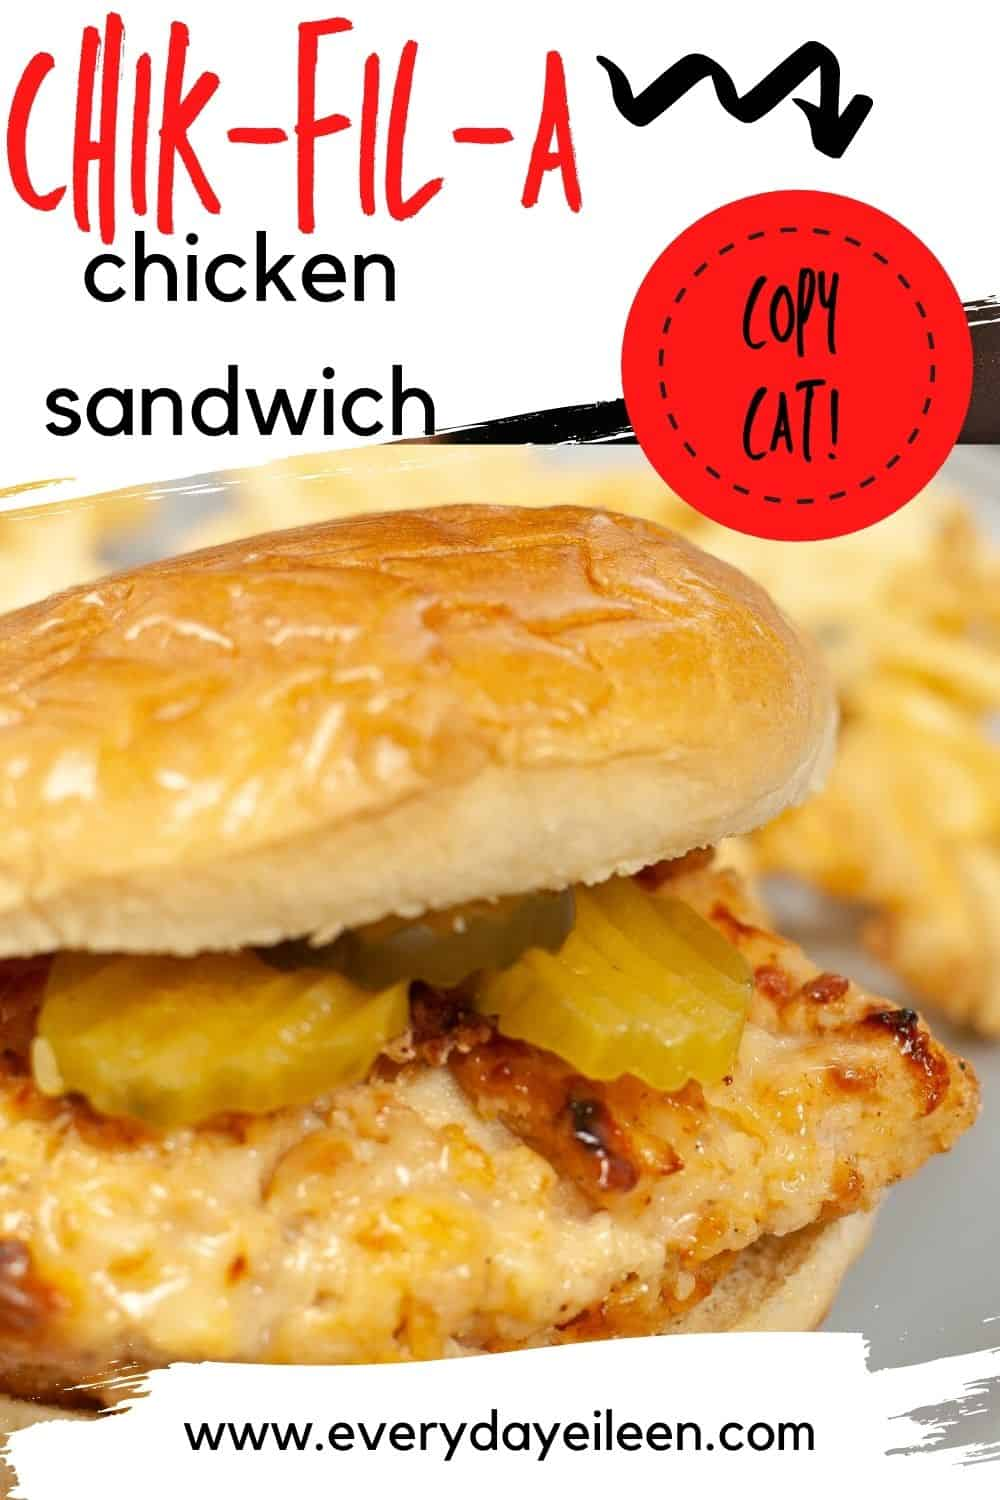 Air Fryer or Baked Chik-fil-A Chicken Sandwich, absolutely delicious and blows away any fast food sandwich. Fresh flavors and easy to make. A hit with the family every time. #chikfilachicken #chickensandwich  via @/everydayeileen/